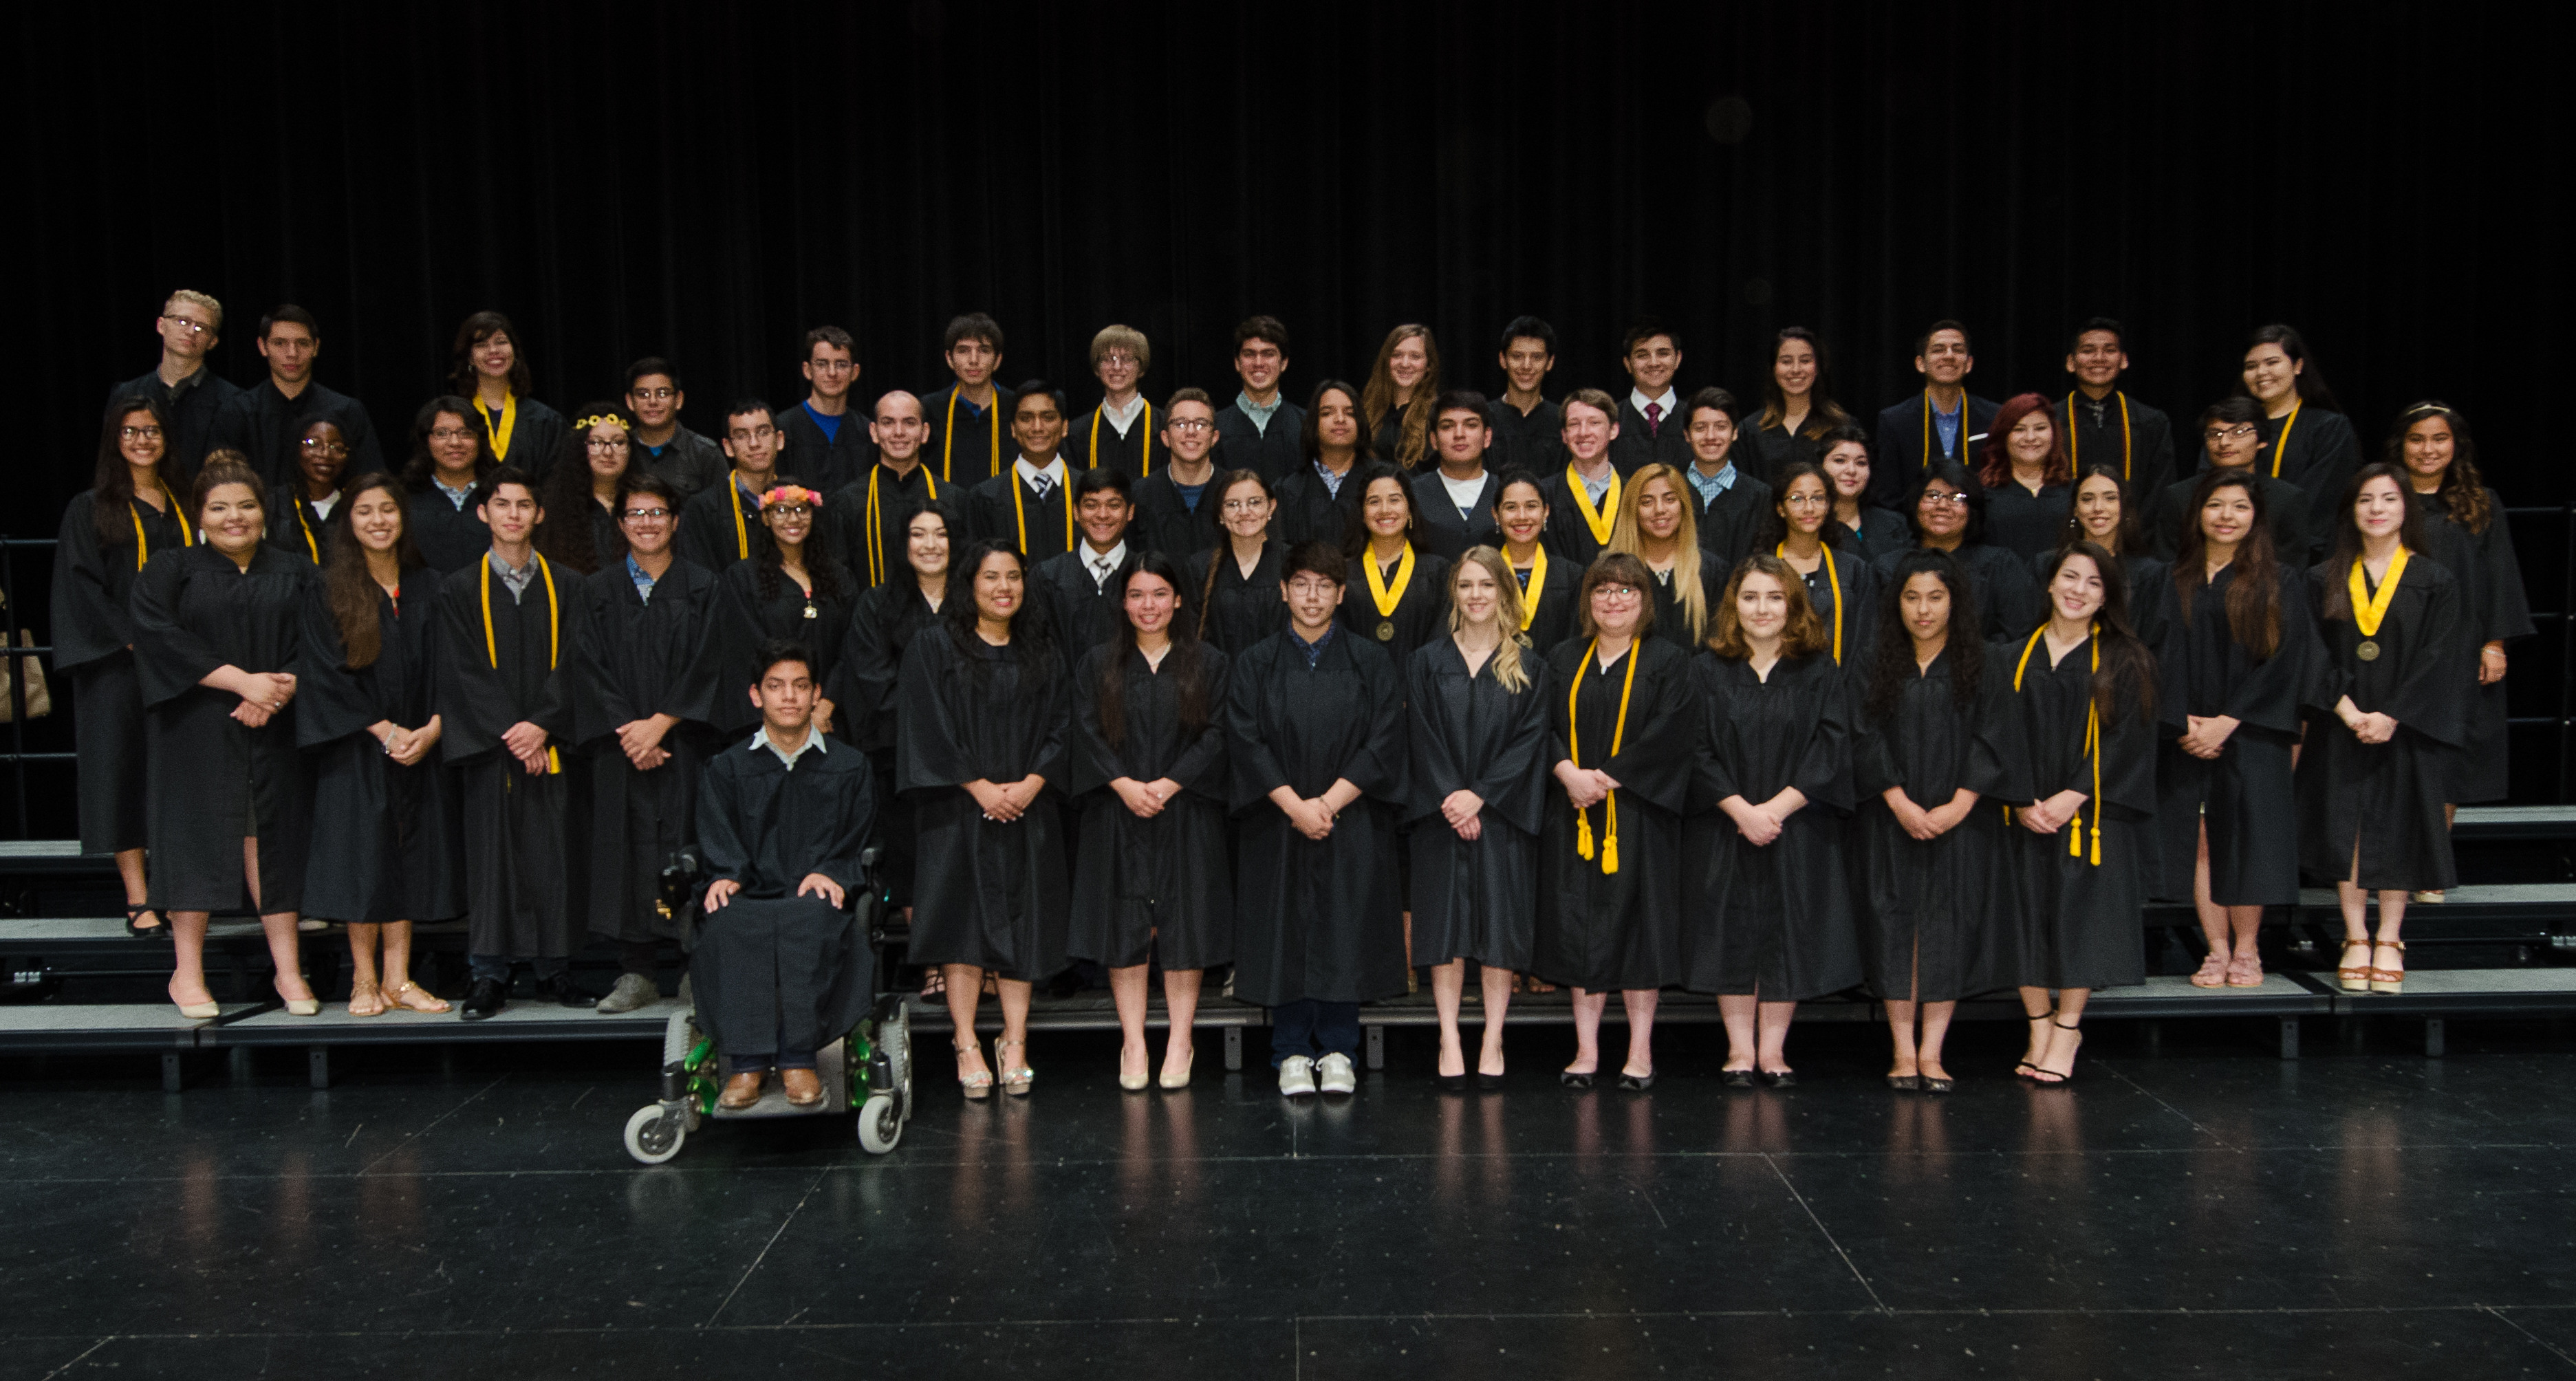 59 ECHS seniors receive degrees from TSTC